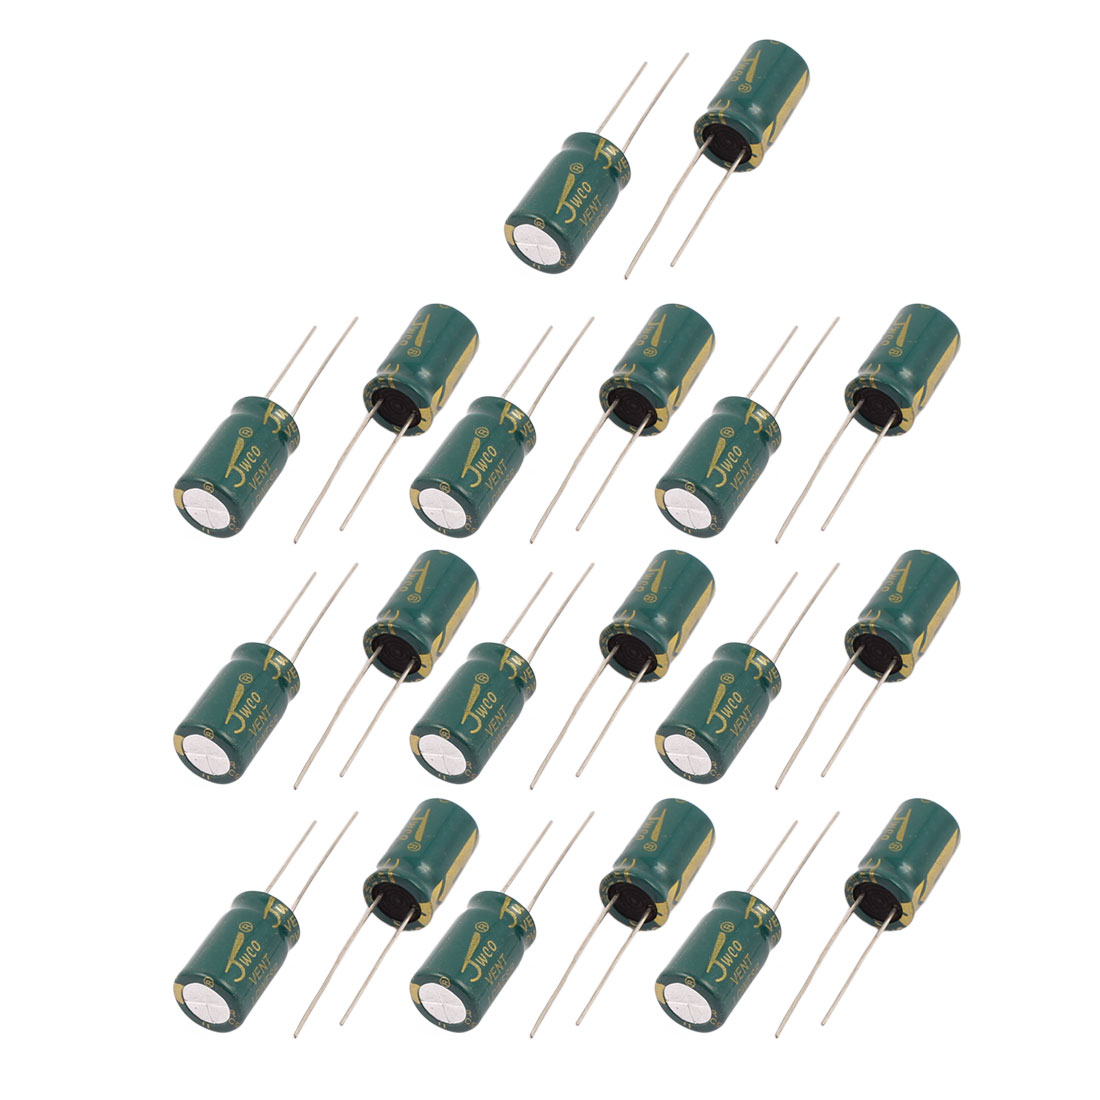 19Pcs 25V 1000uF Aluminum Electrolytic Capacitors 105 degree Celsius 10x17mm